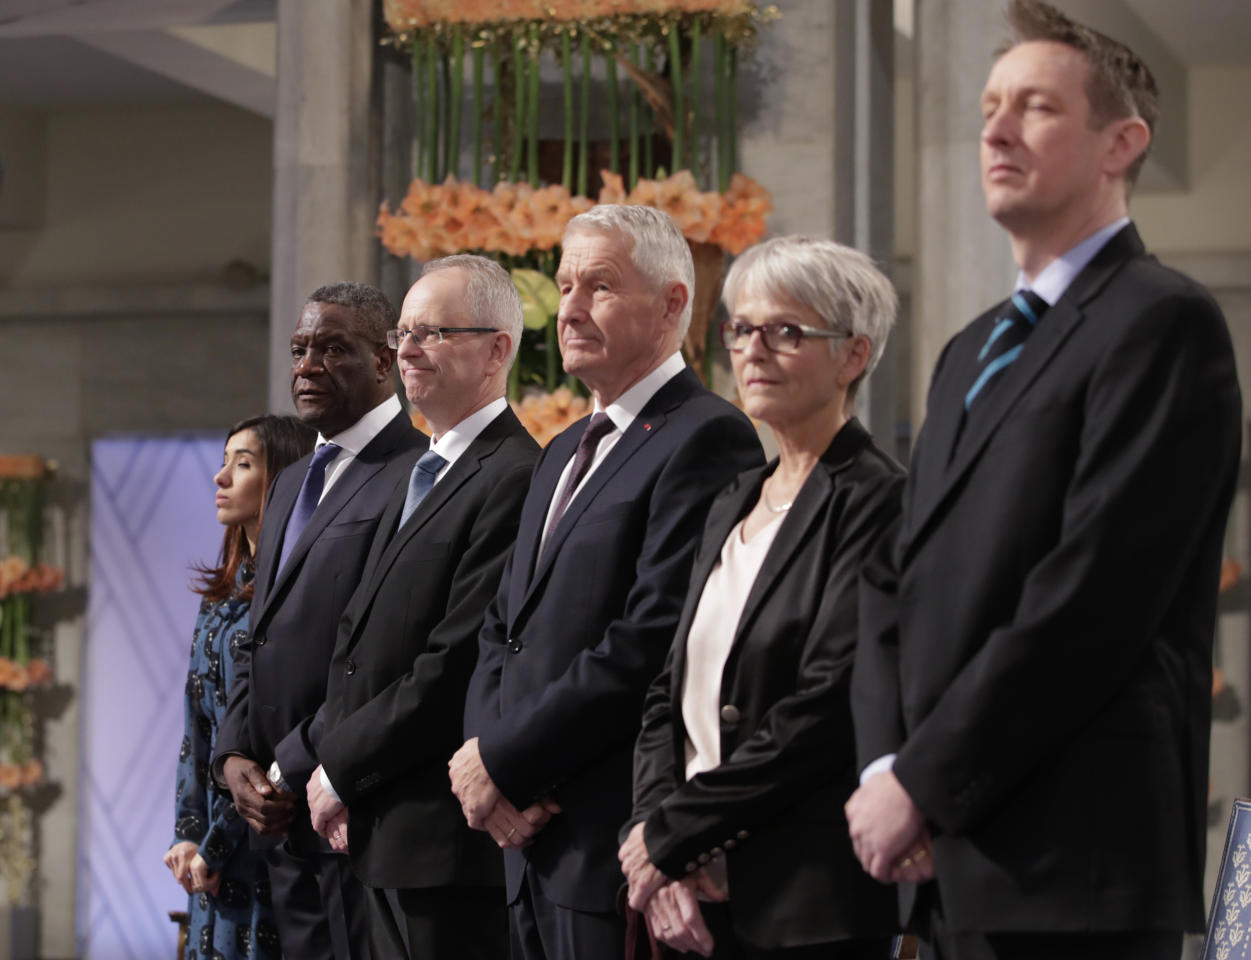 The Peace Price laureates, from left, Nadia Murad from Iraq and Dr. Denis Mukwege from Congo, pose with Henrik Syse, Thorbjorn Jagland, Anne Enger and Asle Toje, during the Nobel Peace Prize Ceremony in Oslo Town Hall, Oslo, Monday Dec. 10, 2018. Dr. Denis Mukwege and Nadia Murad receive the Nobel Peace Prize recognising their efforts to end the use of sexual violence as a weapon of war and armed conflict. (Haakon Mosvold Larsen / NTB scanpix via AP)